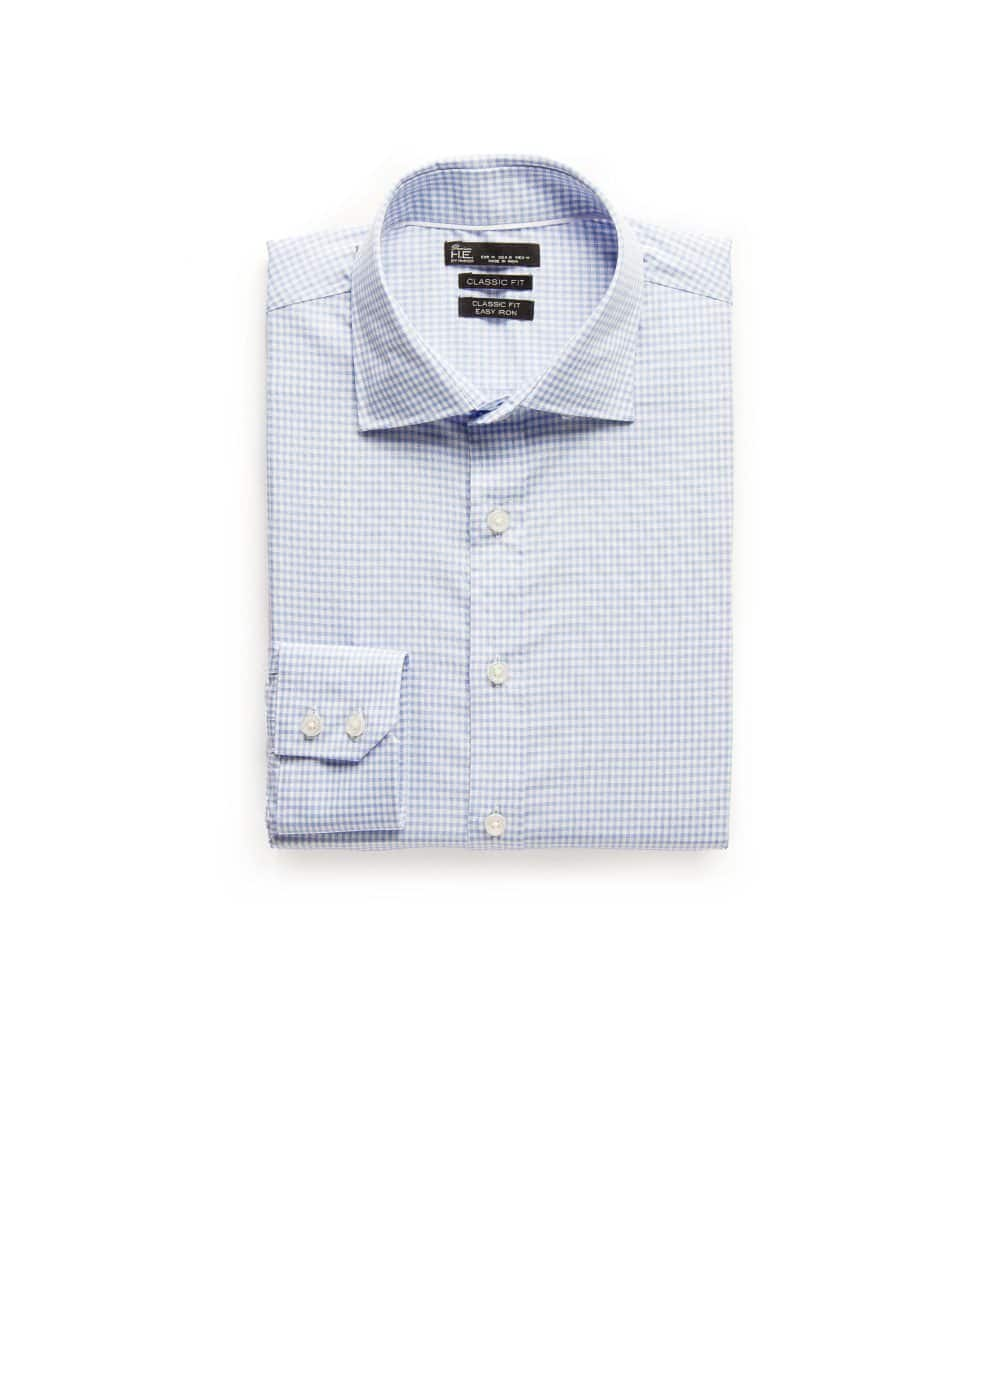 Classic-fit Premium gingham check shirt